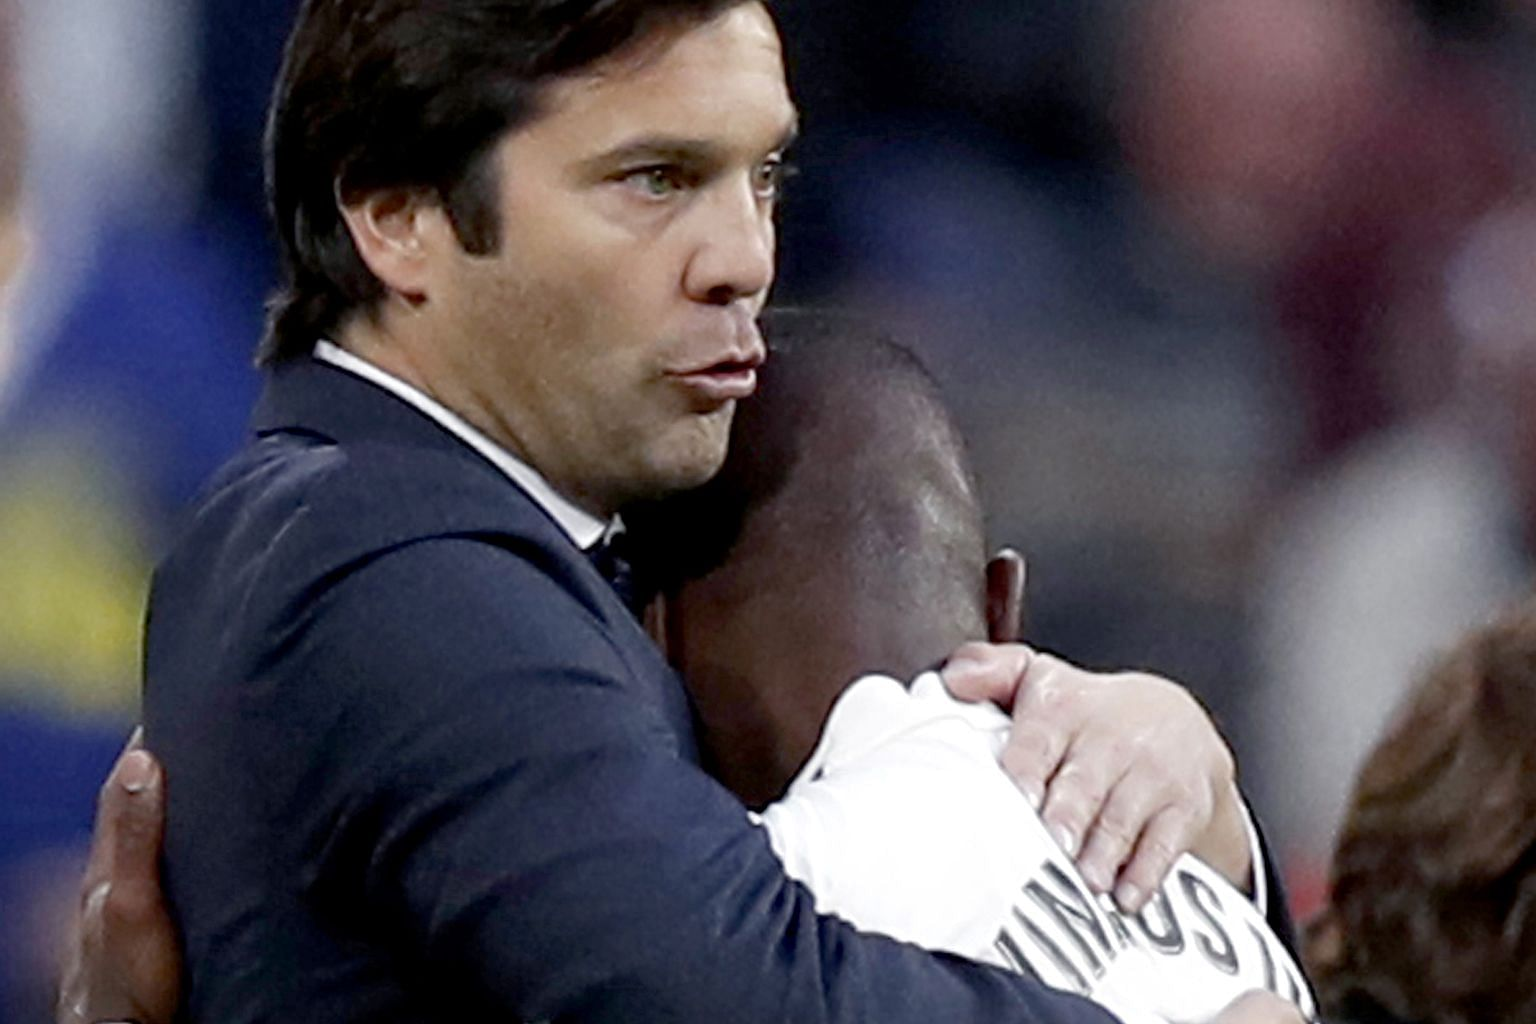 Santiago Solari, embracing Vinicius, has overseen four victories in four games for Real since taking over from Julen Lopetegui two weeks ago. It is the best start of any manager in the club's history.